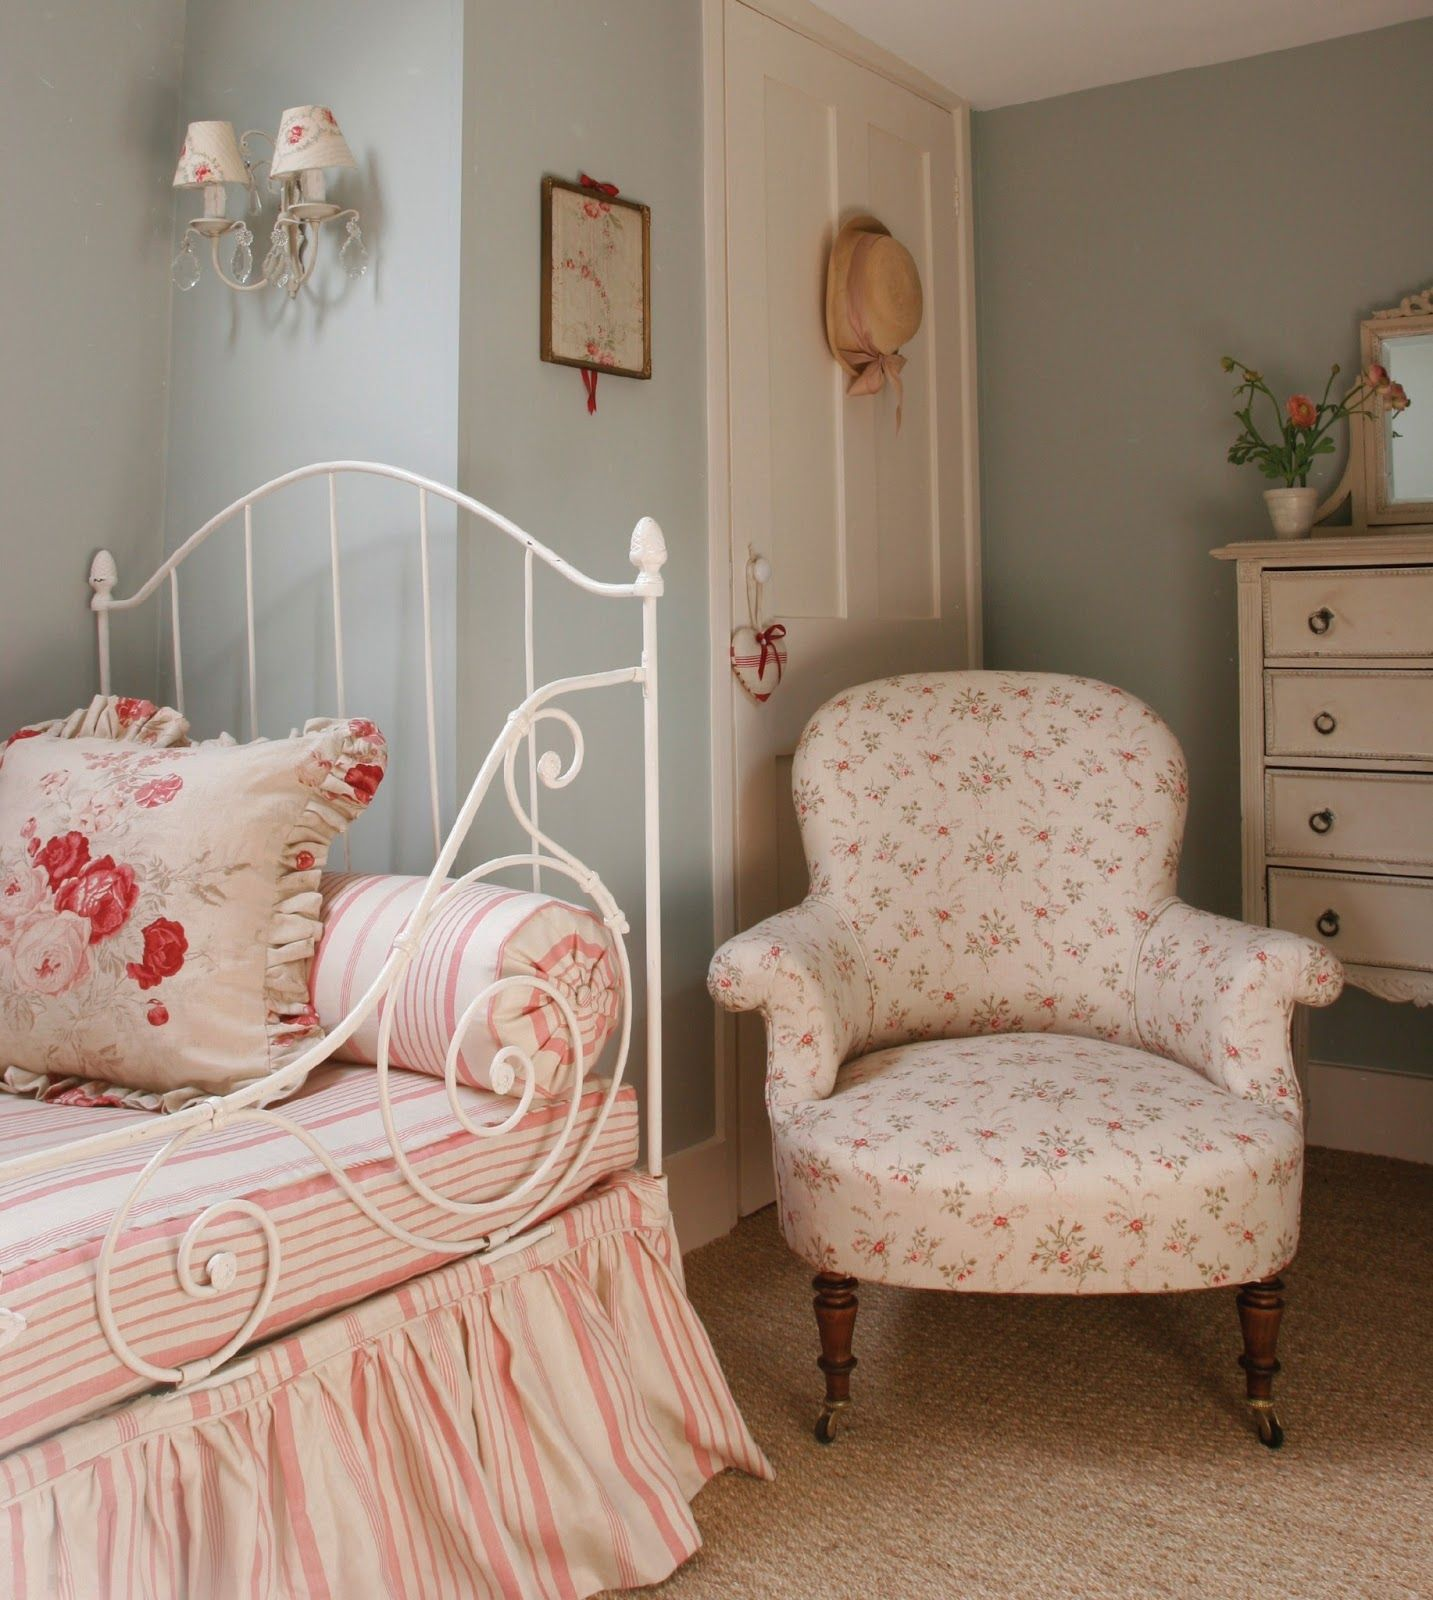 English Country Bedroom Glamorous Hydrangea Hill Cottage Kate Forman's English Country Charm Decorating Inspiration